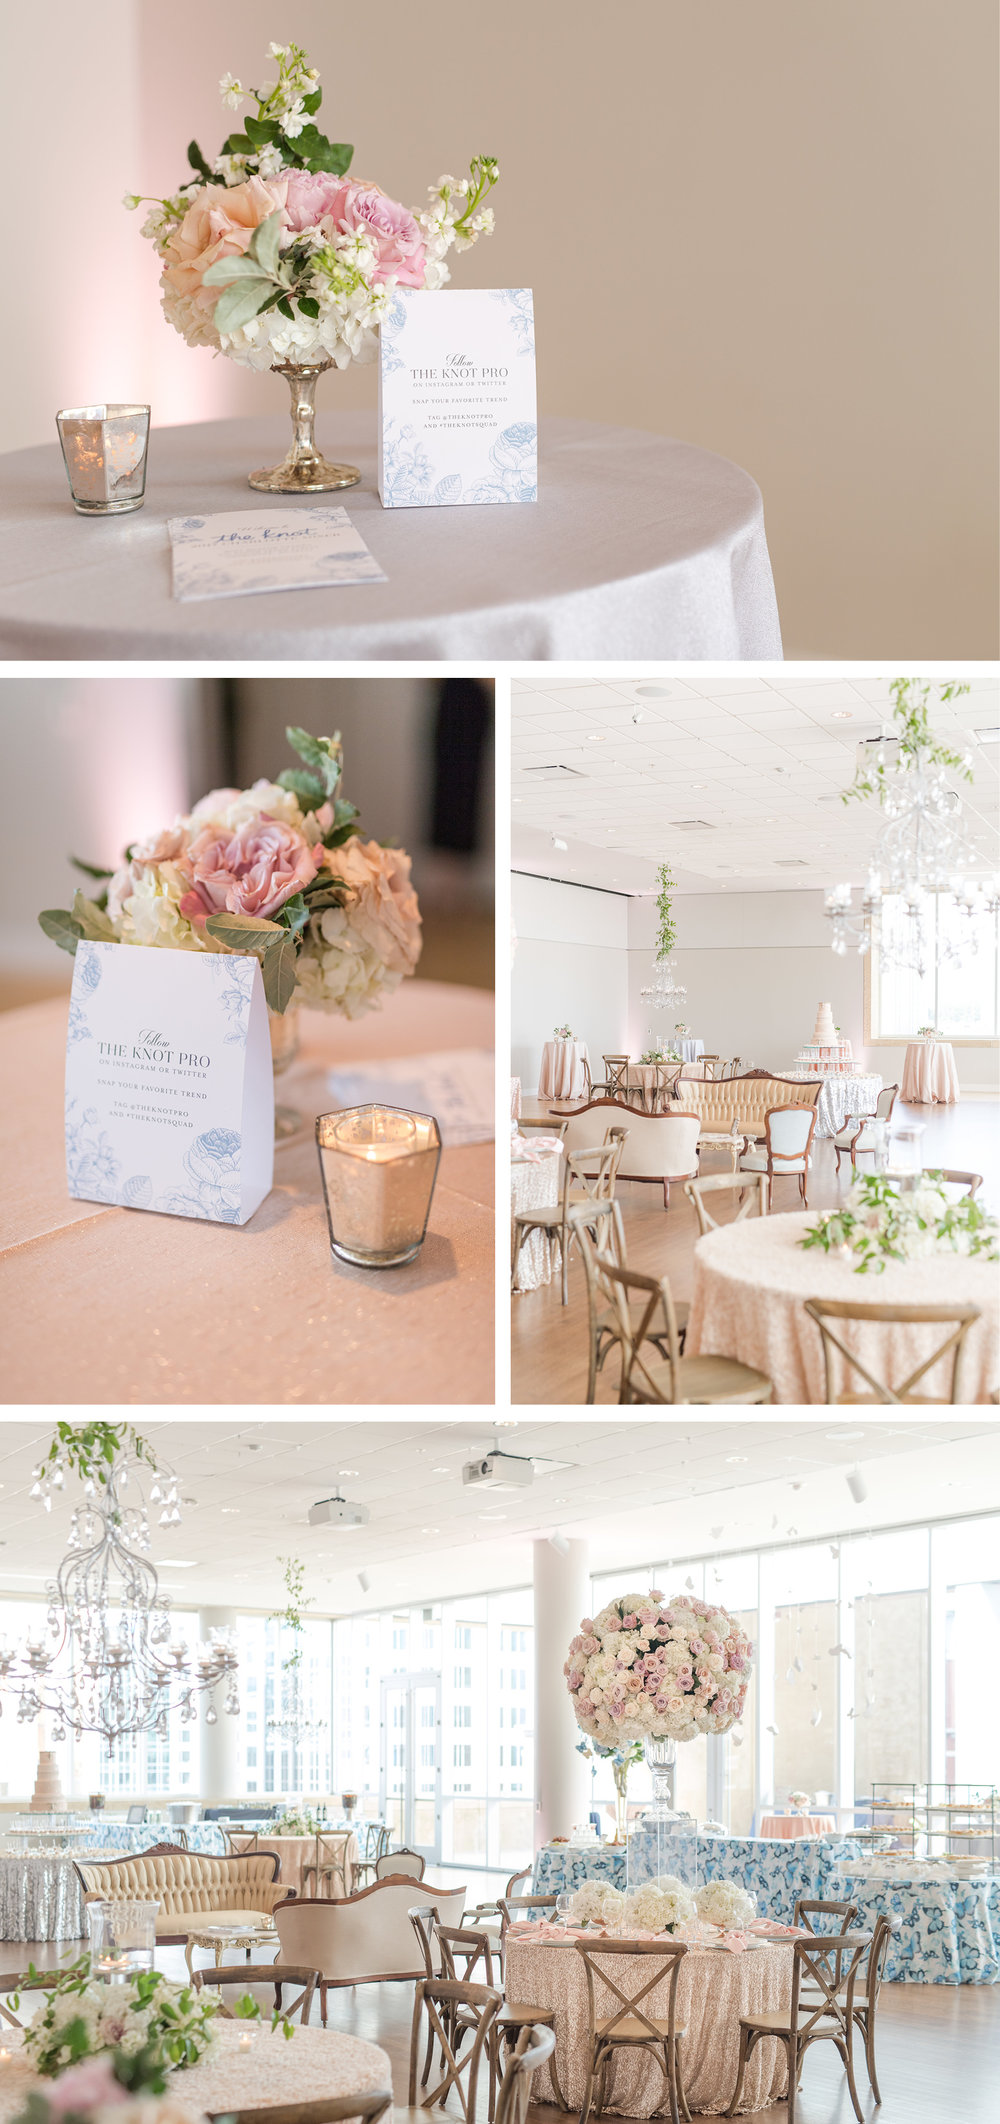 The-Knot-Pro-Charlotte-Mixer-Charlotte-Wedding-Professionals-Wedding-Stationer7.jpg